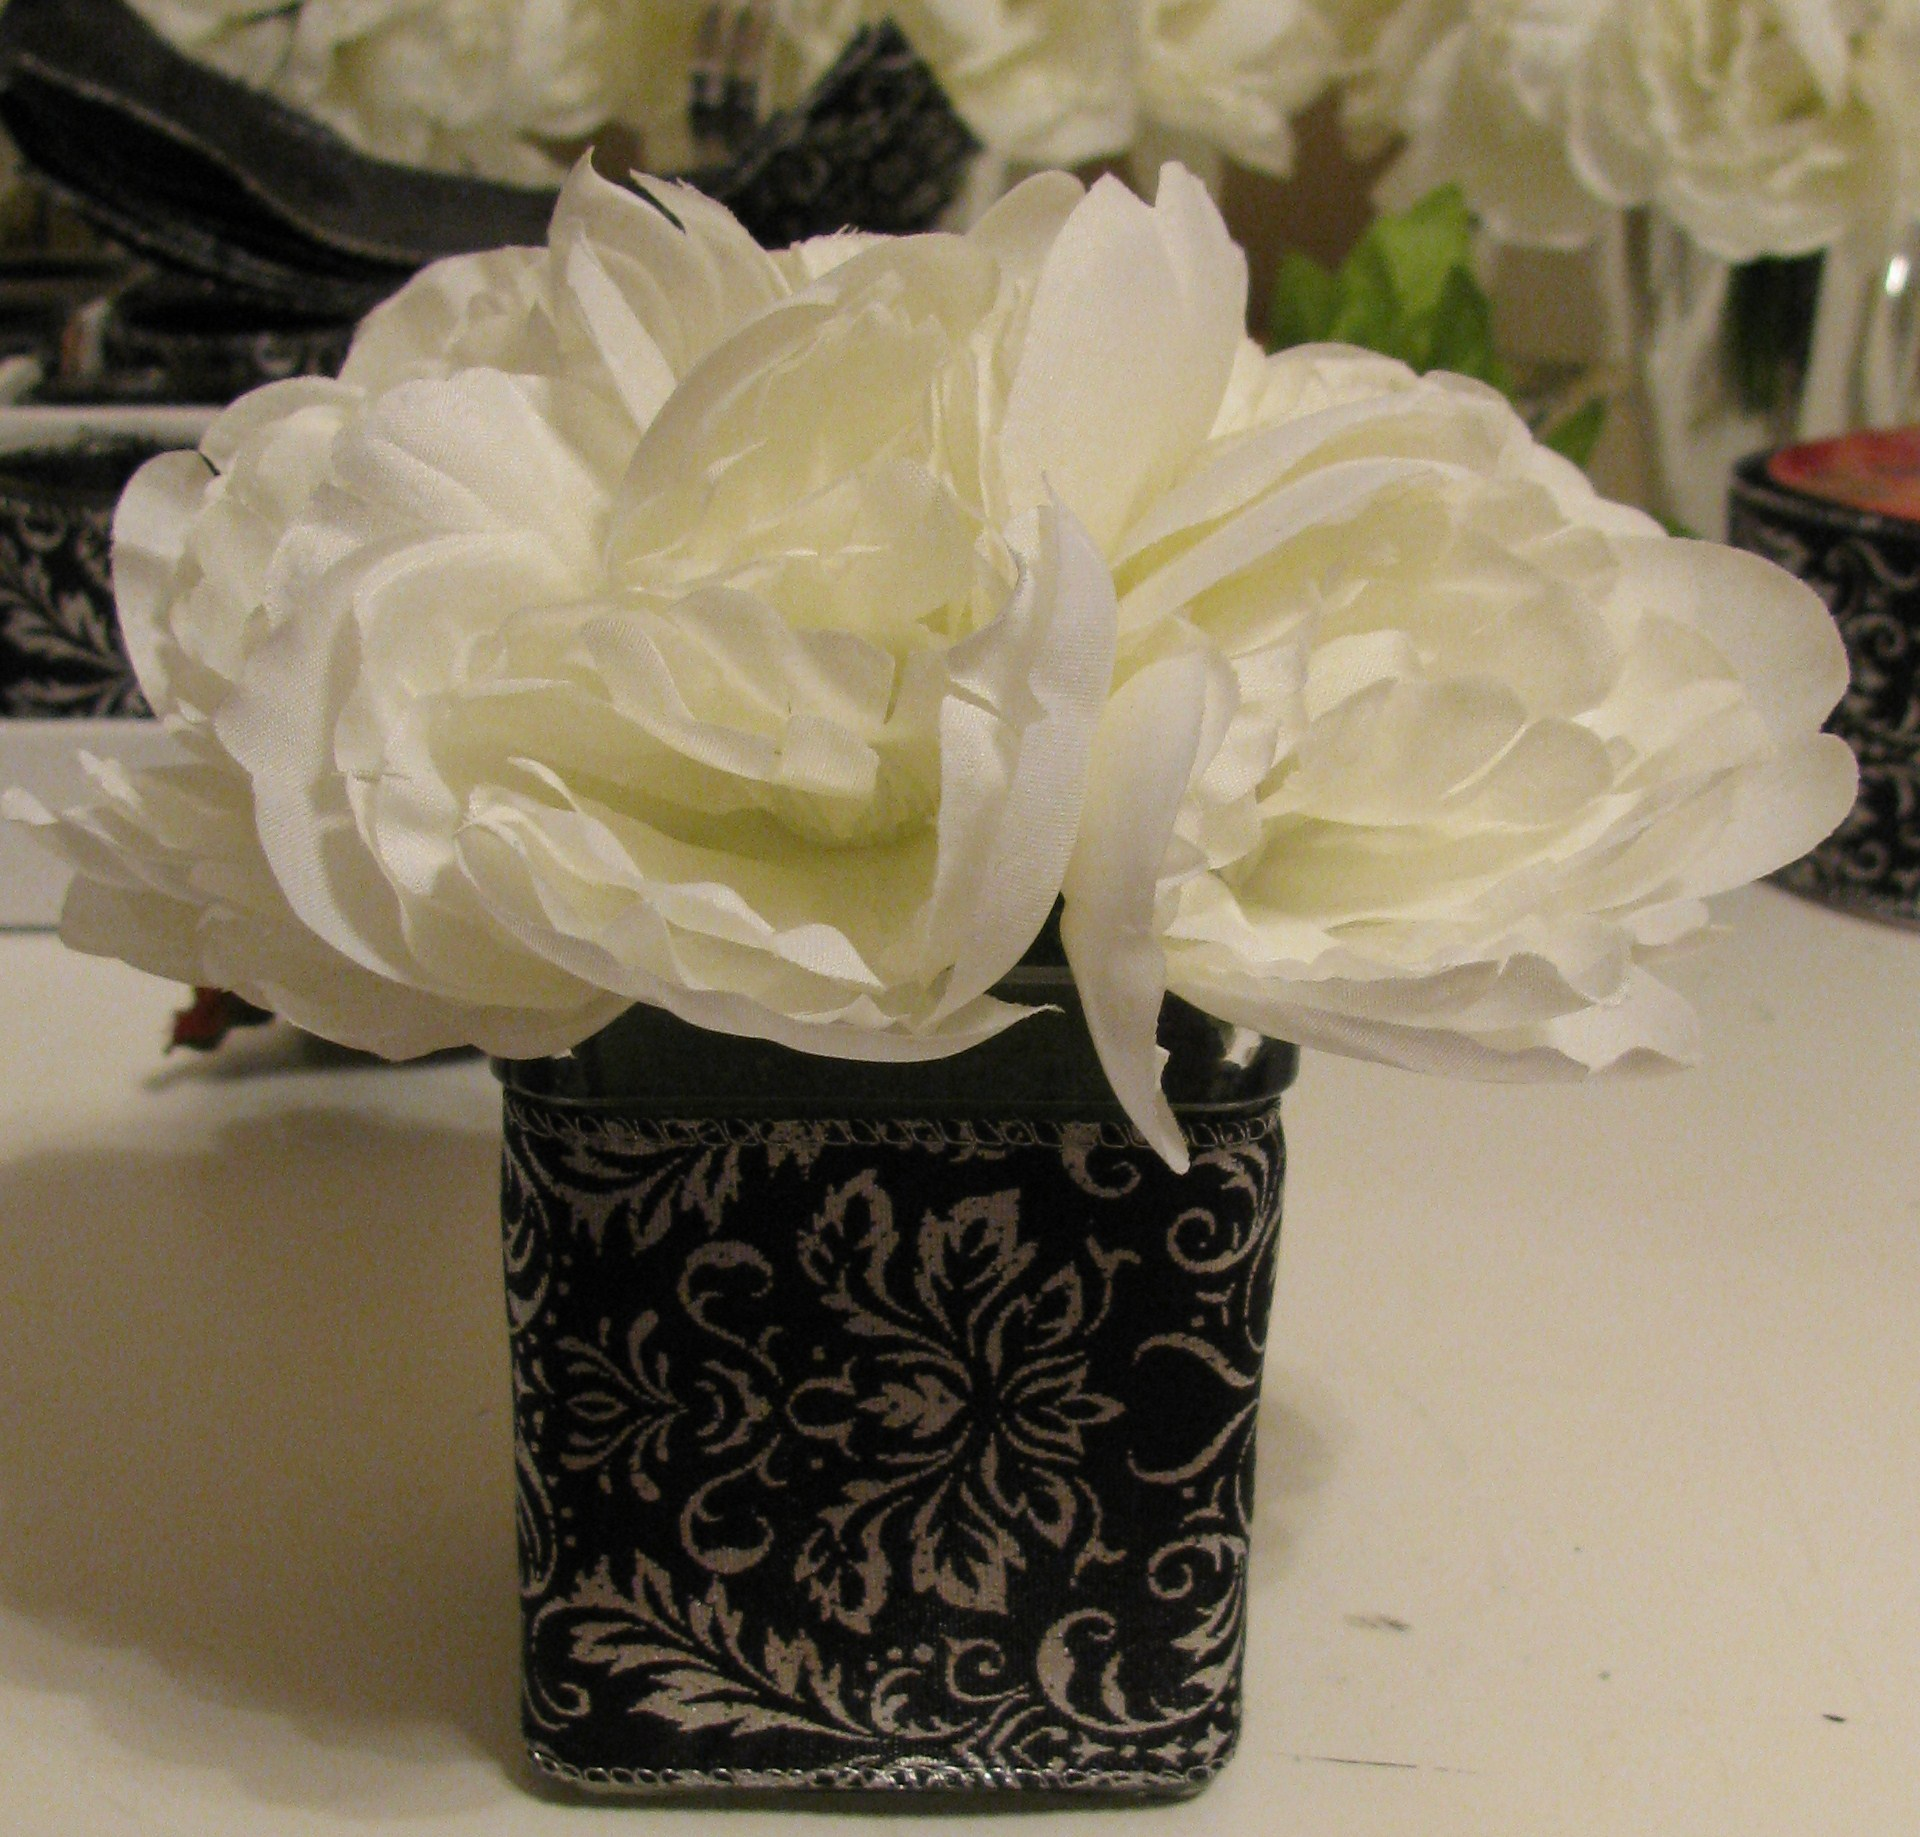 Ceremony, DIY, Reception, Flowers & Decor, Ceremony Flowers, Flowers, Peonies, Damask, Peony